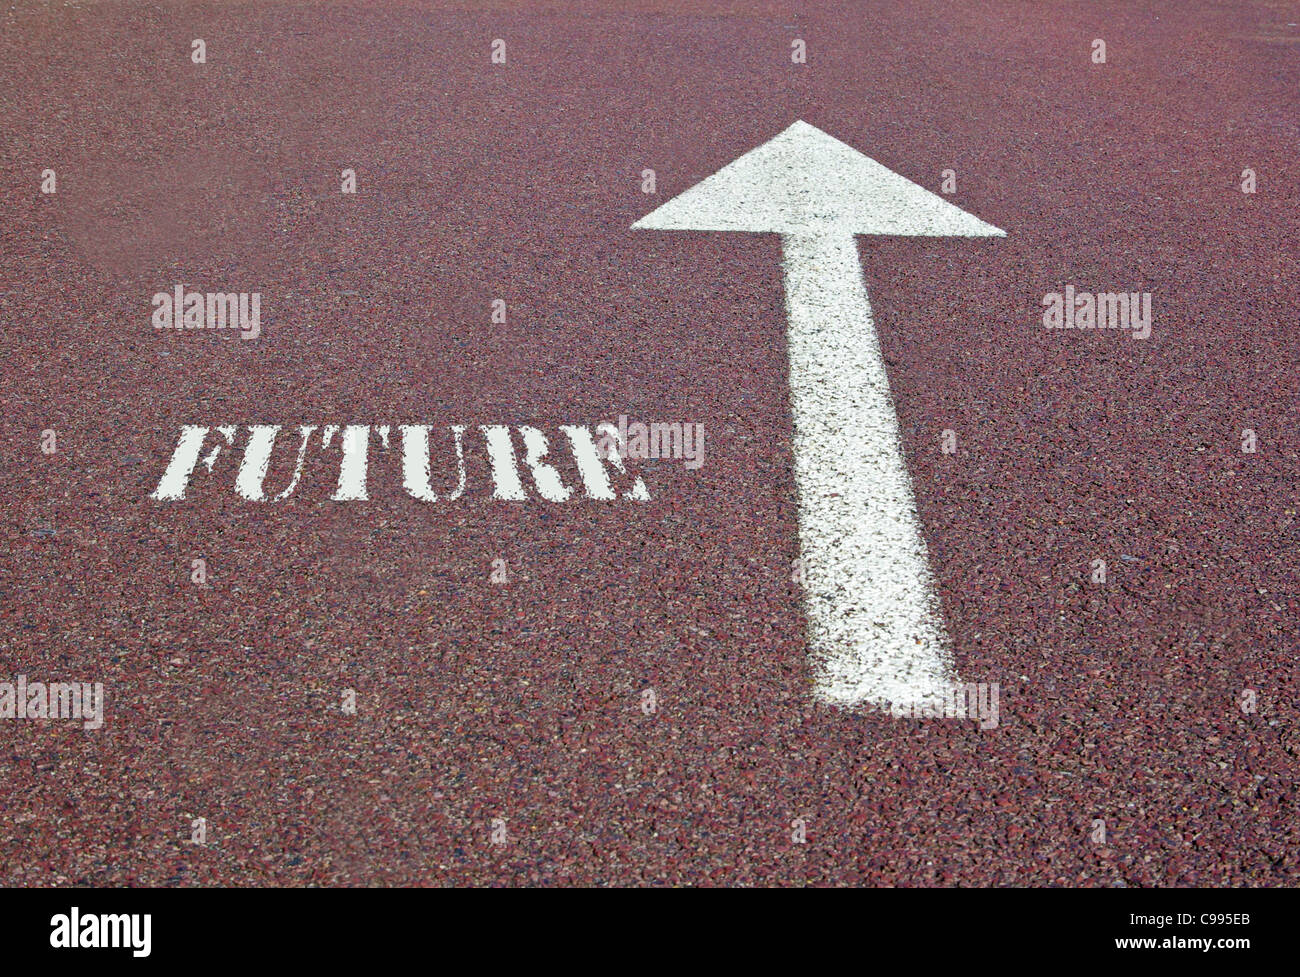 an arrow on the asphalt showing the future direction - Stock Image